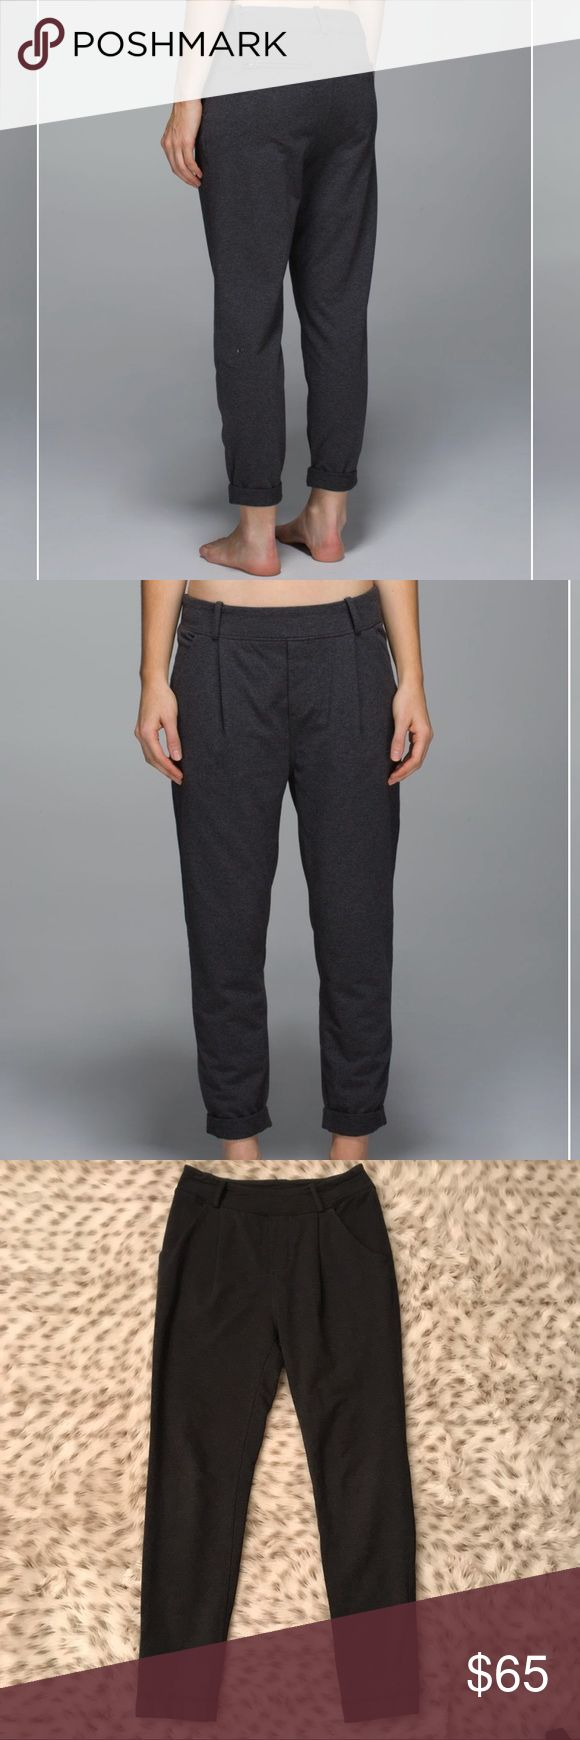 Stress less coloring by the shore - Lululemon Stress Less Pant Dark Gray Soot Lululemon Stress Less Heathered Dark Gray Soot Size